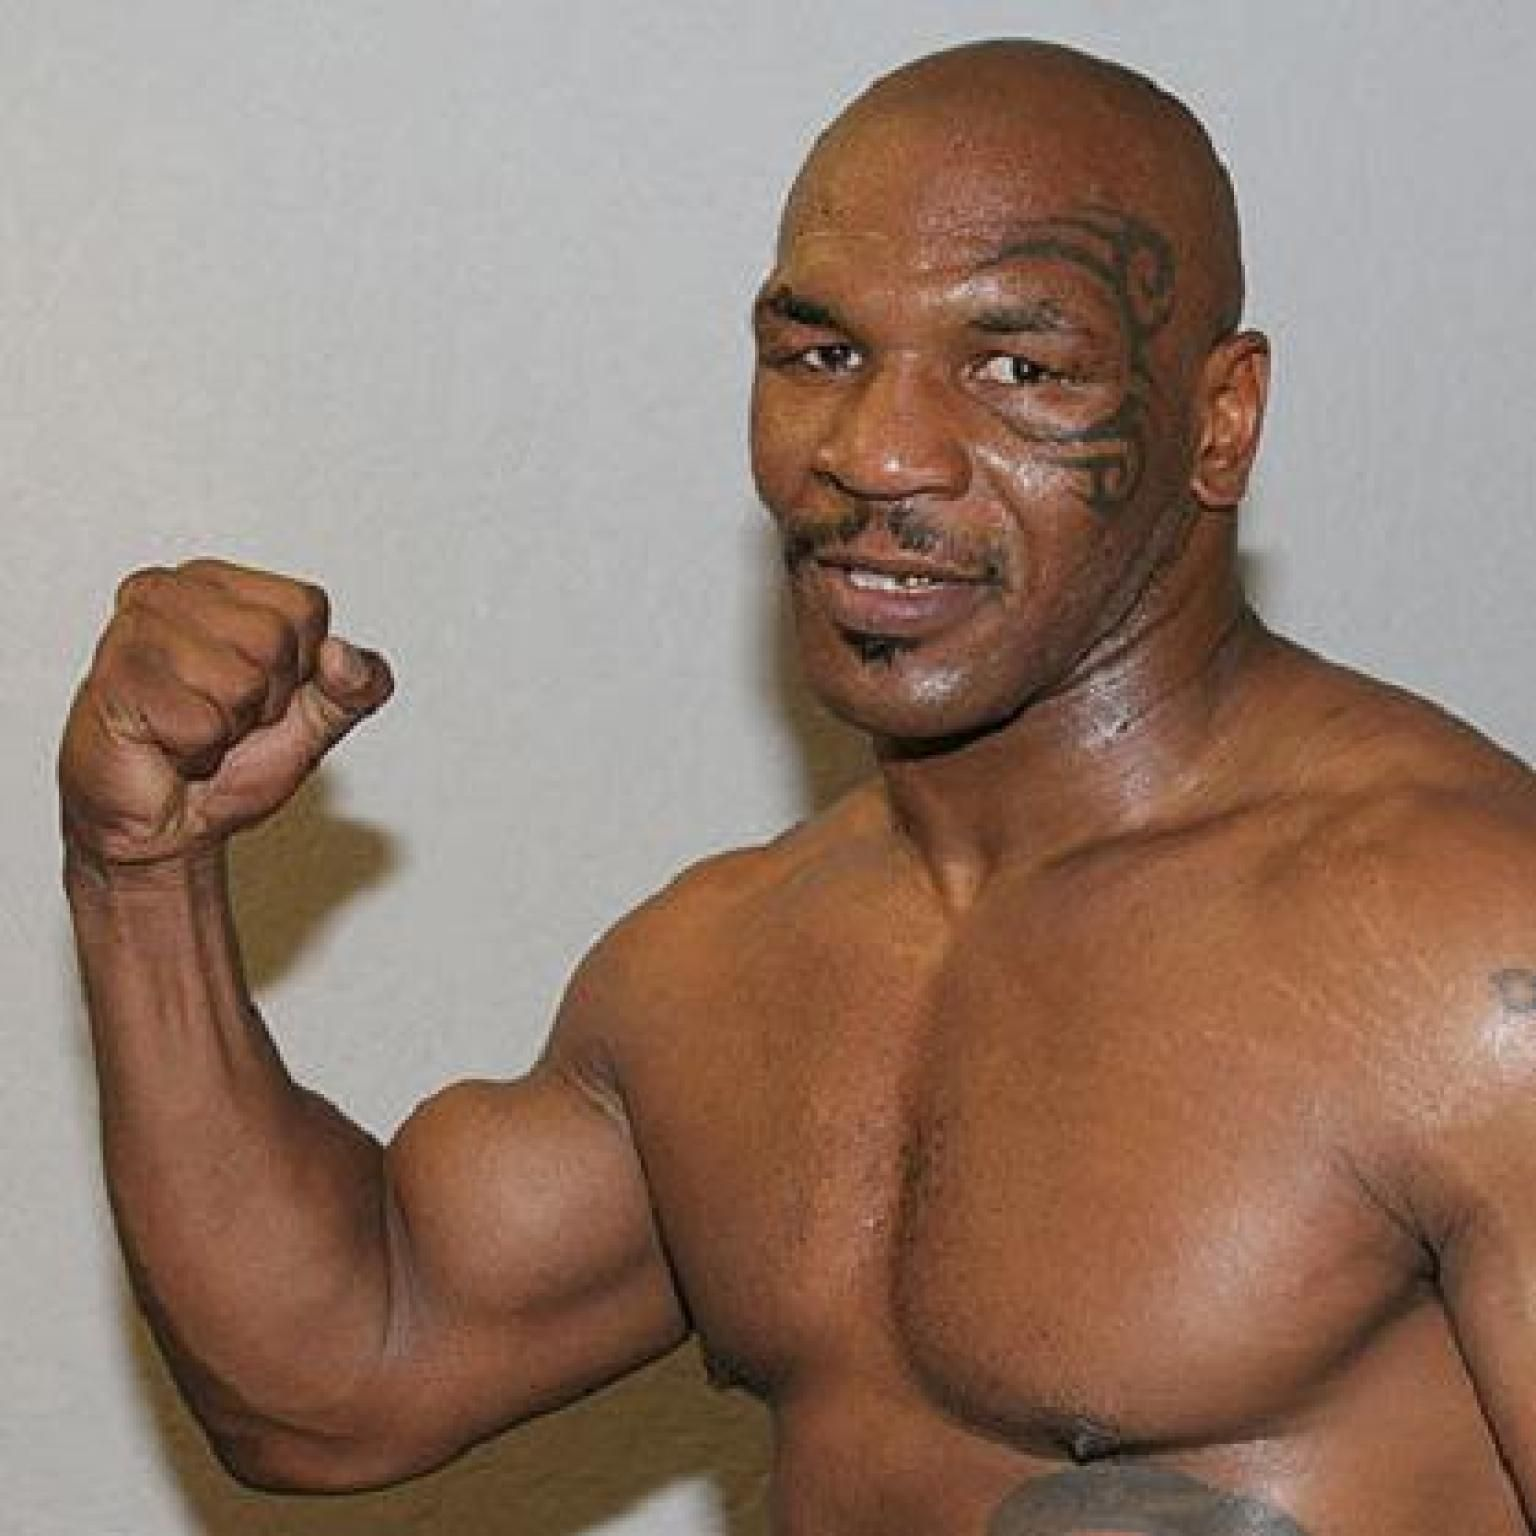 an example of mike tyson as a tragic hero Mike tyson's rise was spectacular, but his fall was a sad spectacle his fight with evander holyfield will live in sports infamy when it became clear he was losing, tyson took a bite out of his.